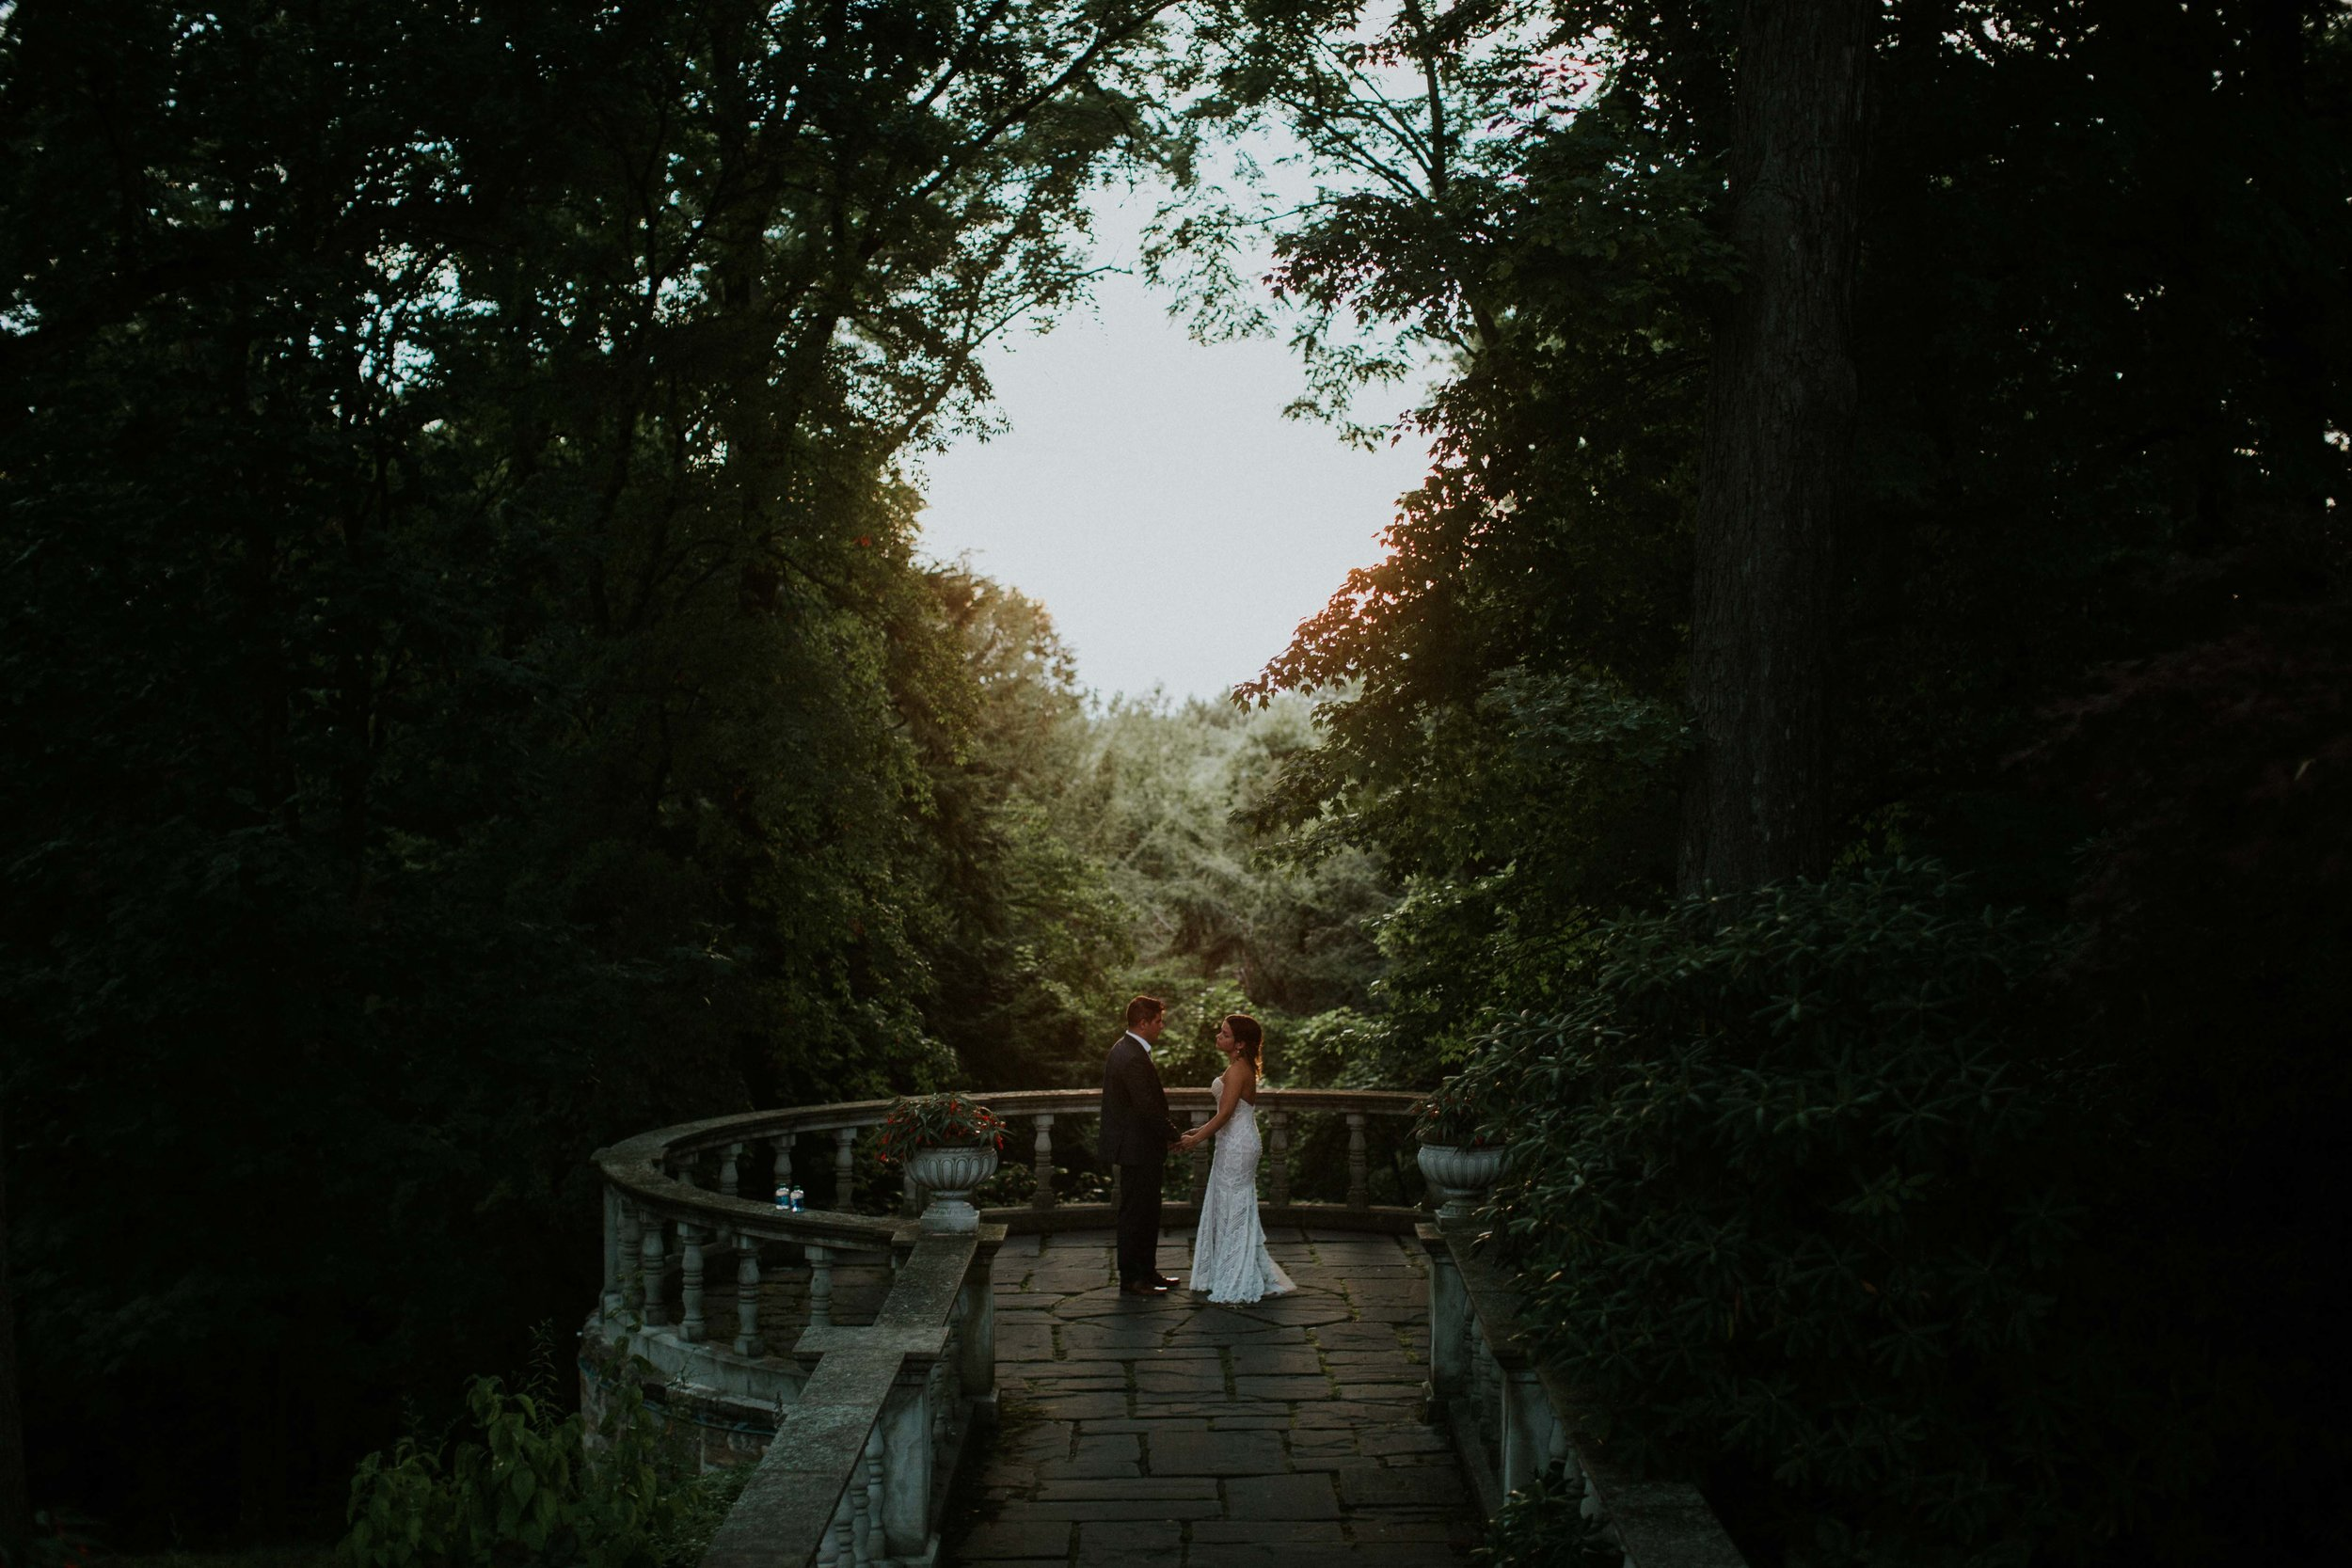 VINCE & WHITNEY - ROMANTIC SUMMER WEDDING